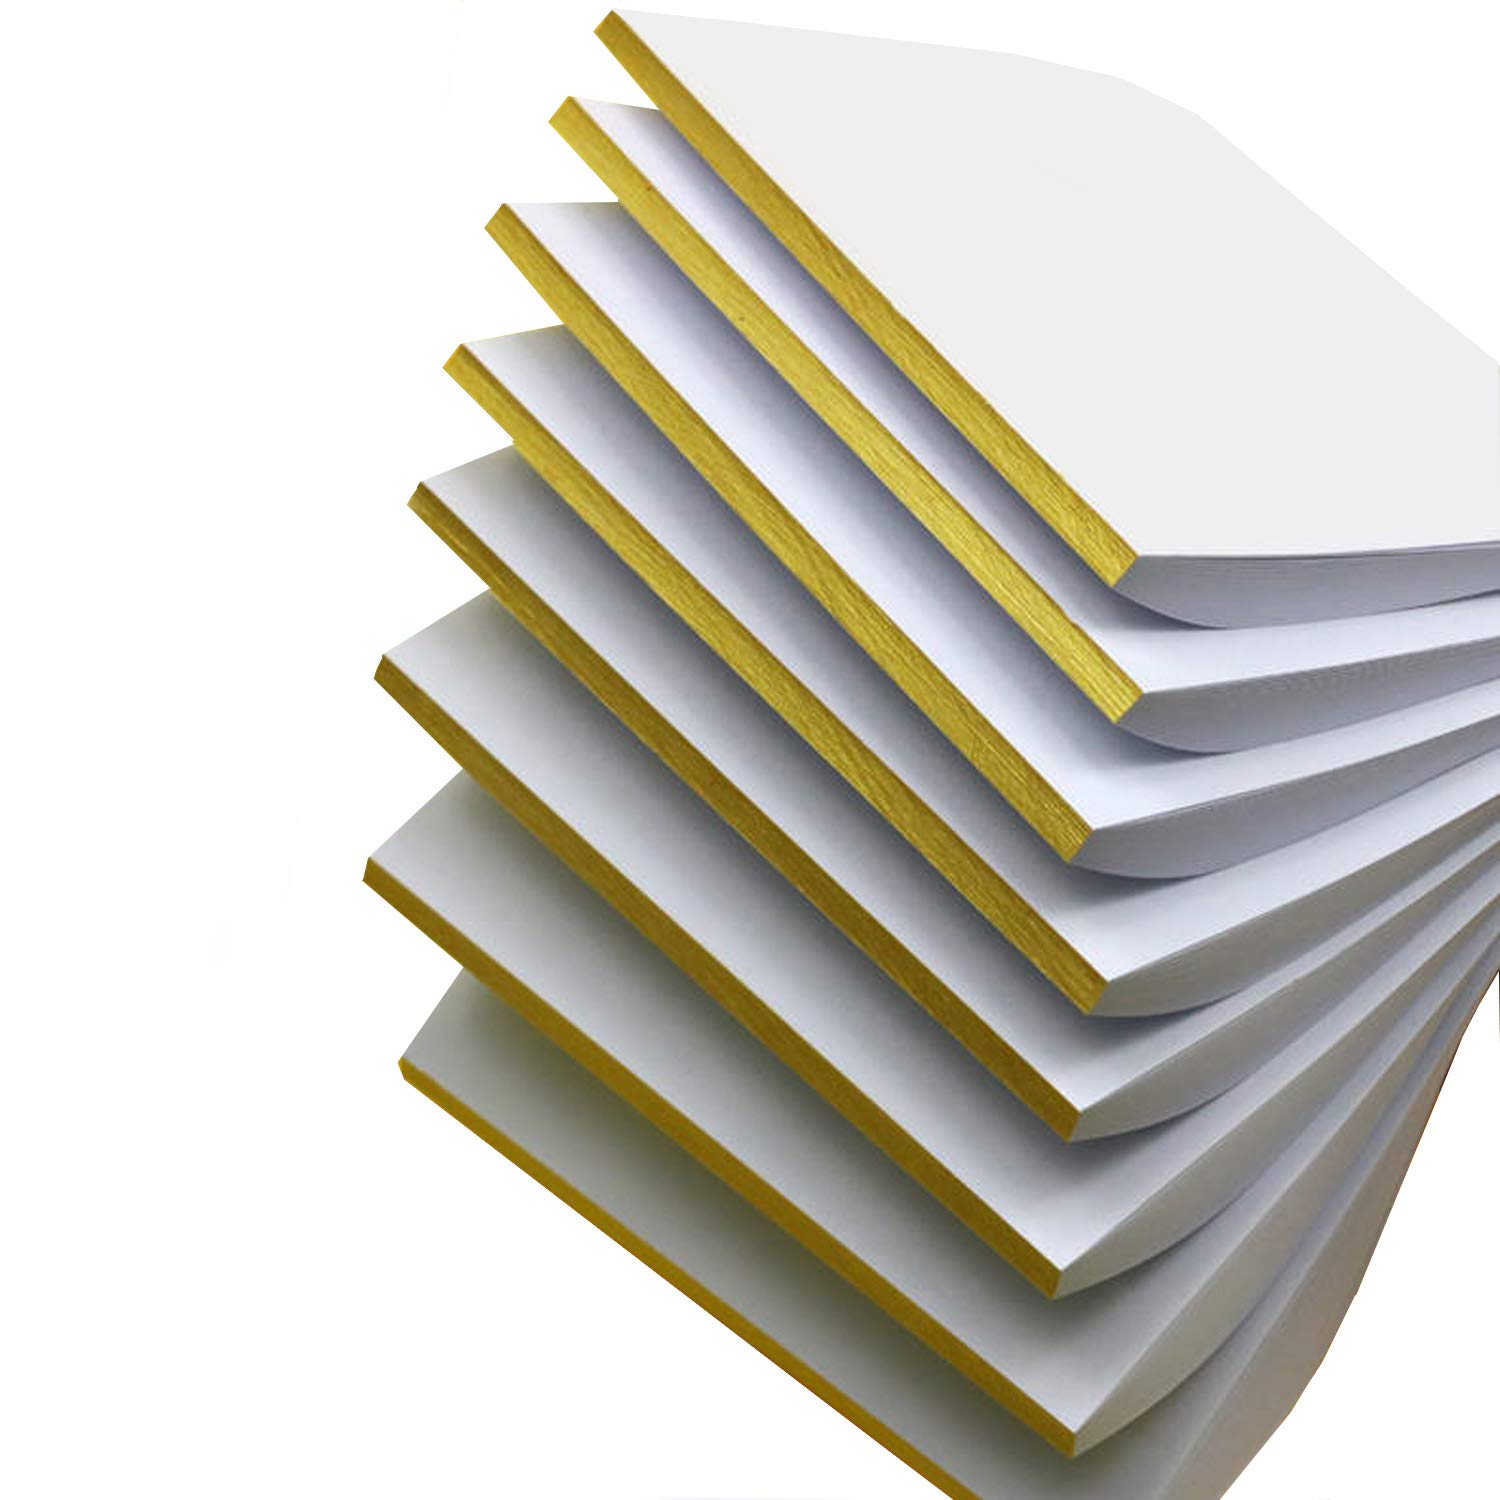 400 Sheets 8 Pads Liwute Multi-purpose Blank Writing Pads-Note Pads - Memo Pads - Scratch Pads (26x18cm), It is a Good Helper for Your Life, Work and Study